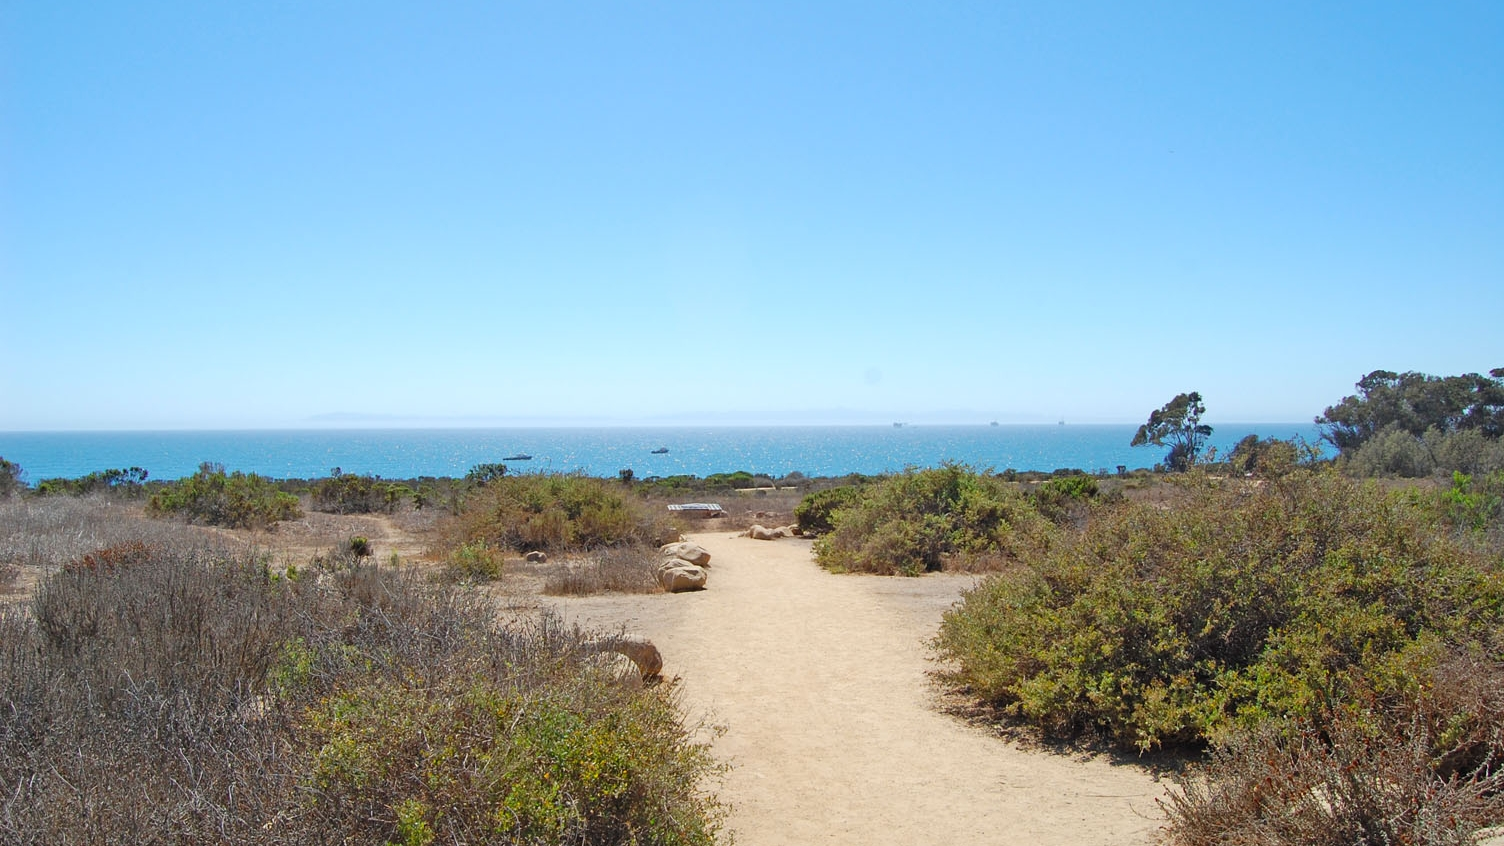 Carpinteria_Bluffs.jpg